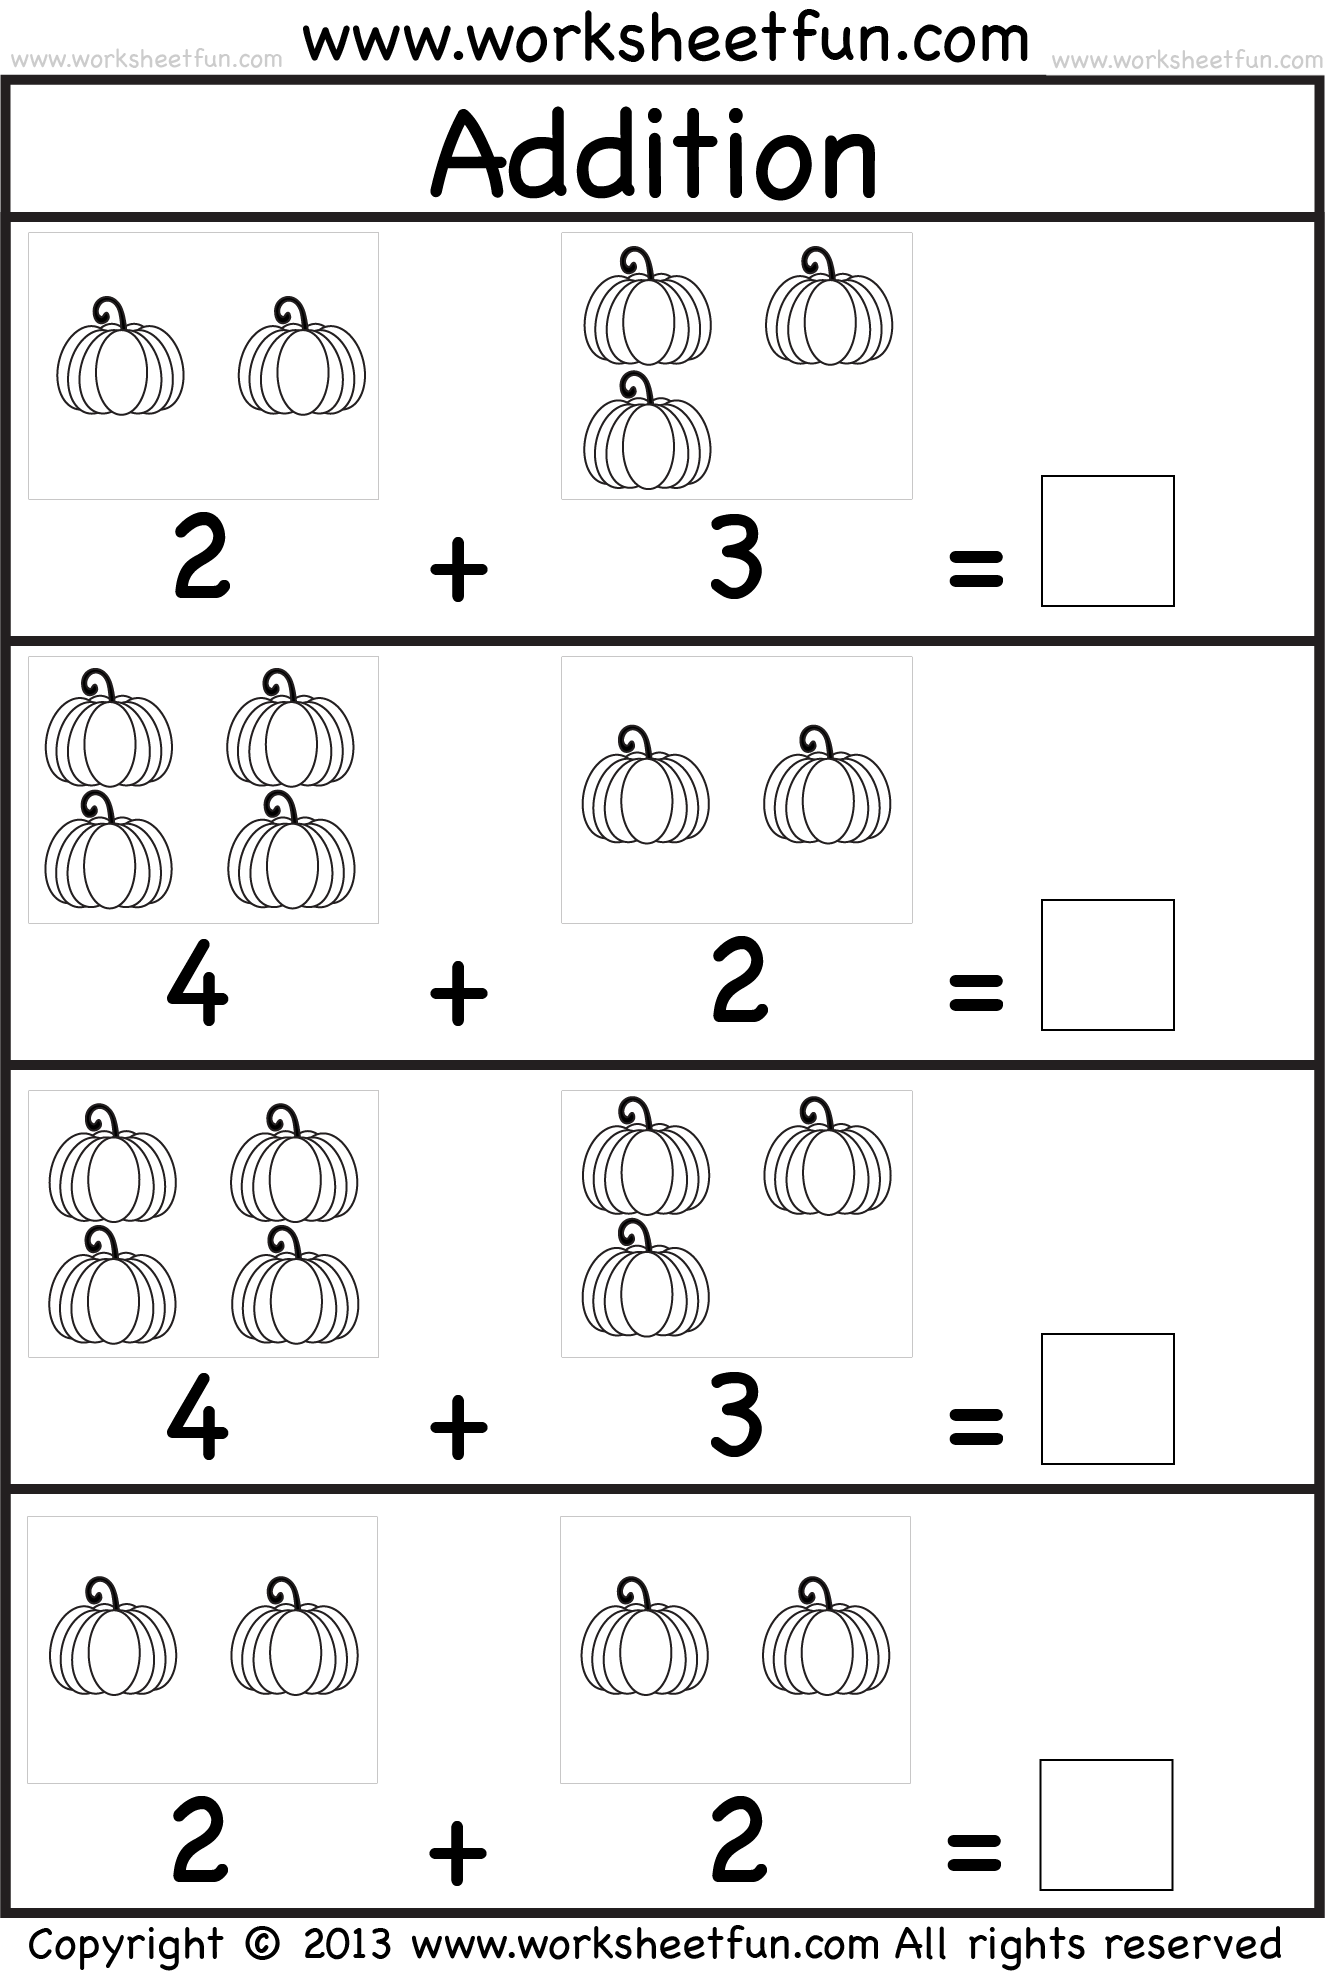 Kids practice adding singledigit numbers and writing the sums on – Addition Worksheets Kindergarten Printable